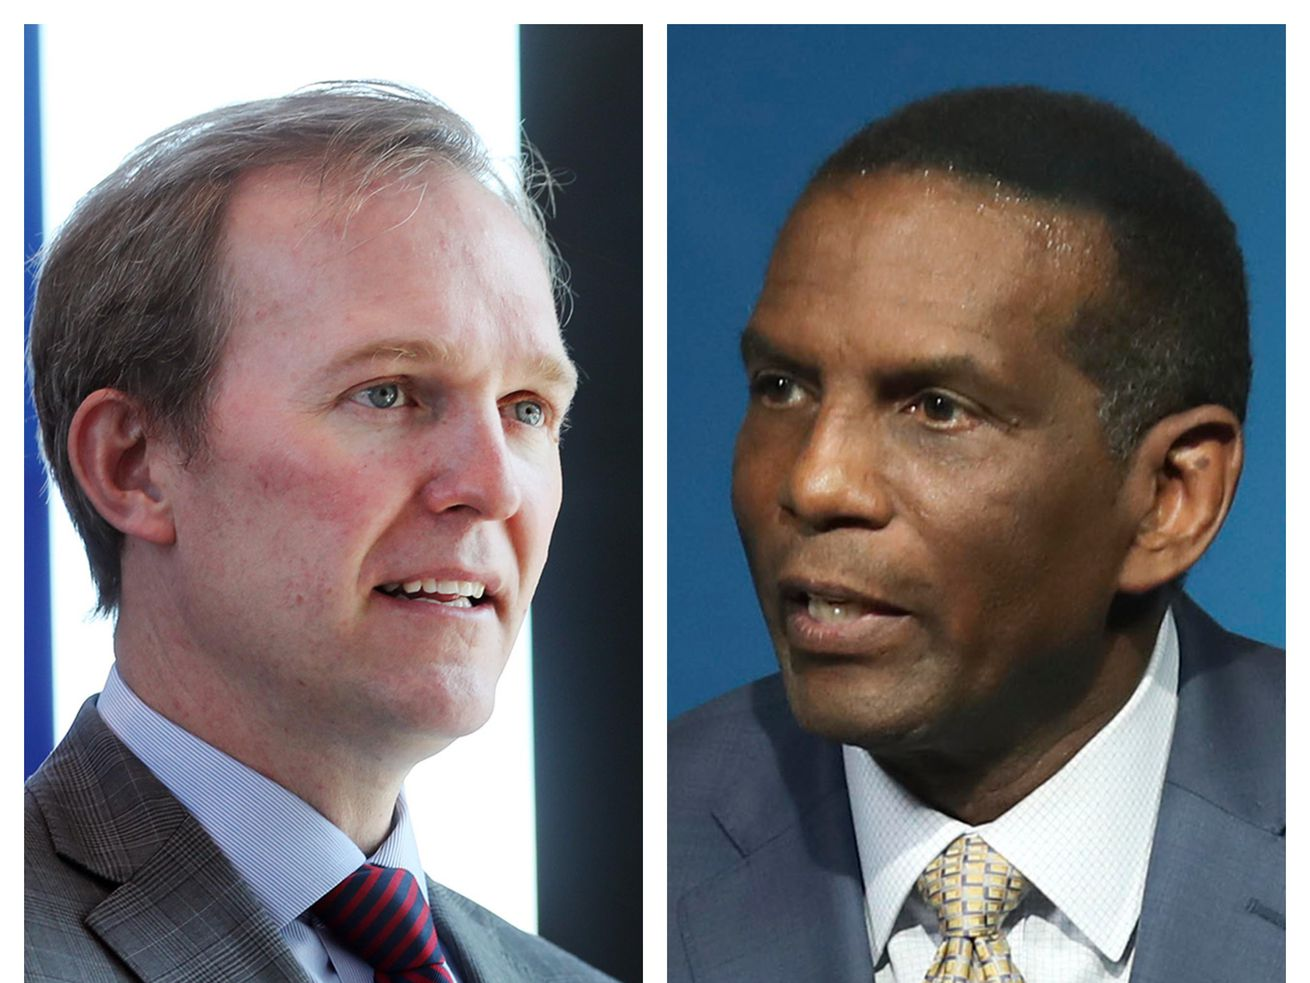 McAdams-Owens congressional race all tied up, Deseret News/Hinckley poll finds